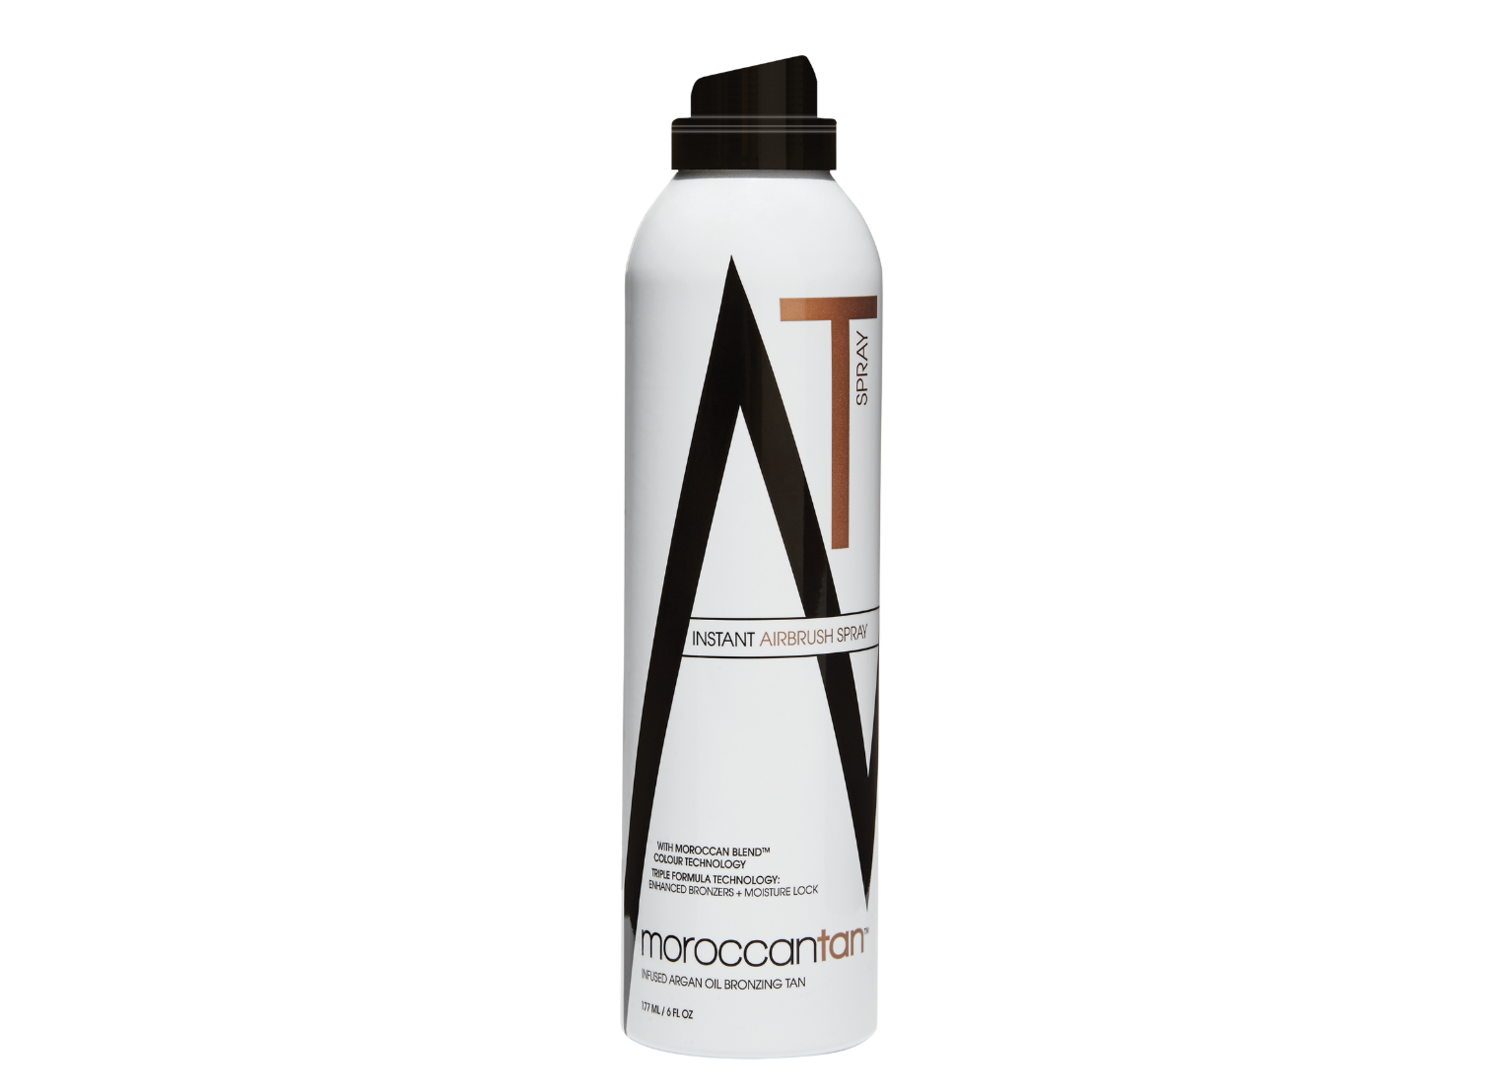 MoroccanTan Instant Airbrush Spray - 177 ml.